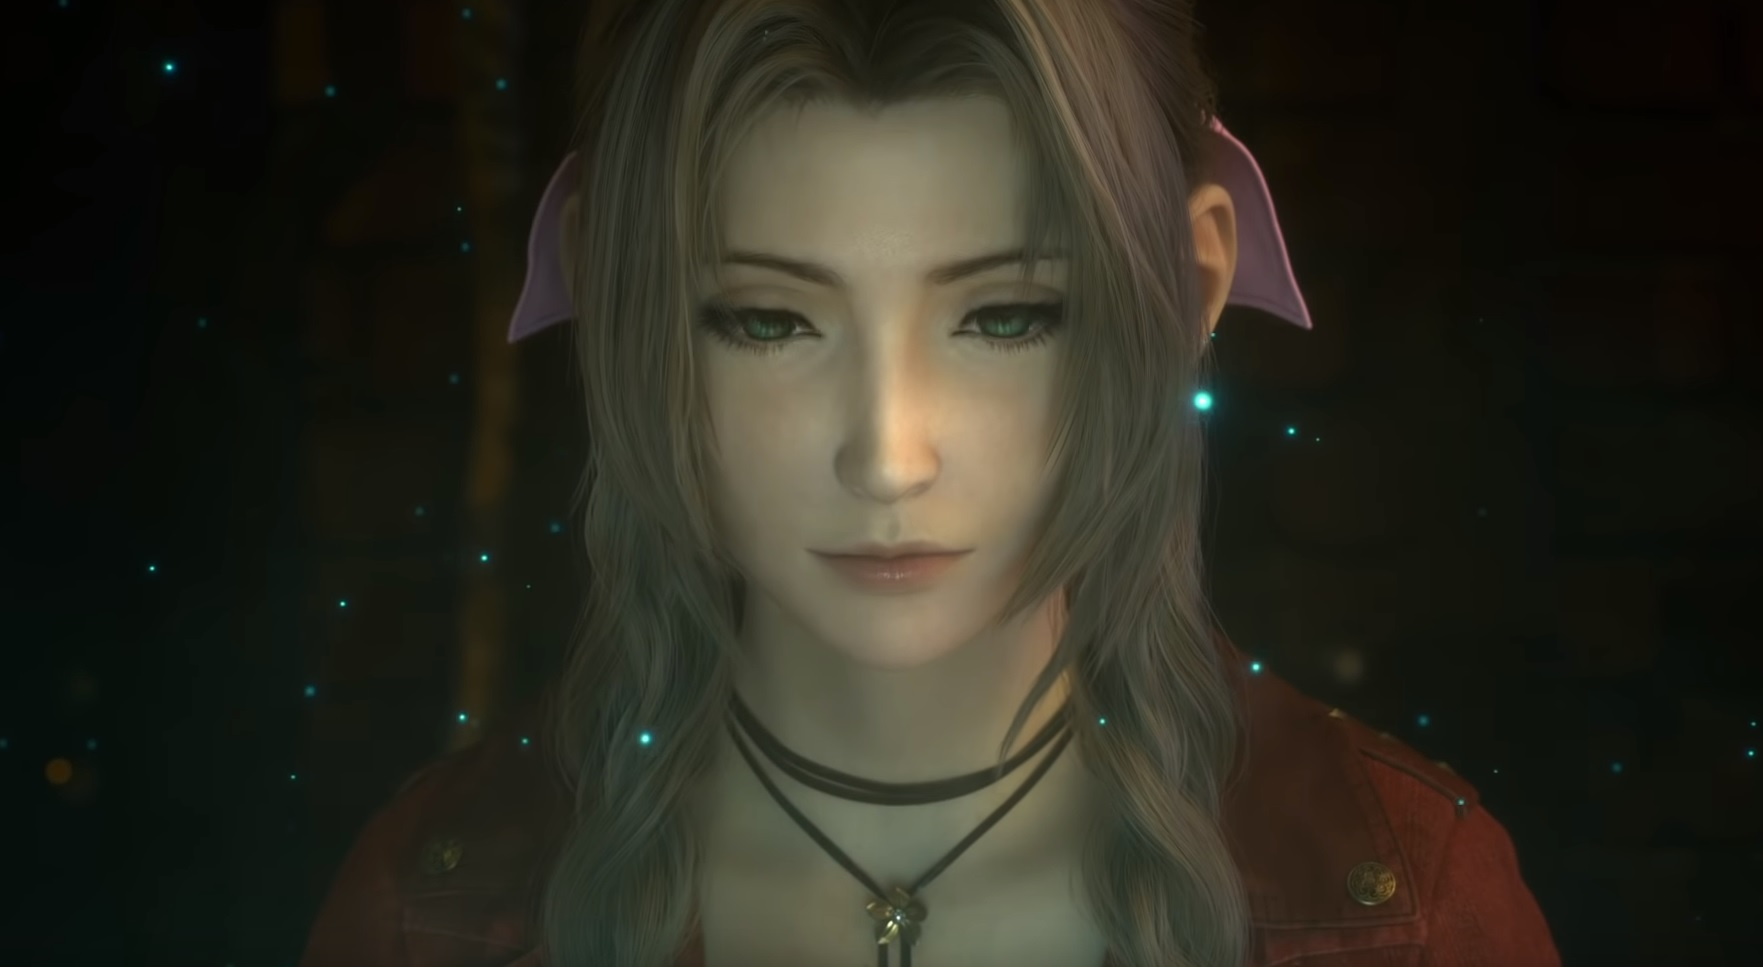 Here's the full Final Fantasy VII Remake opening movie screenshot